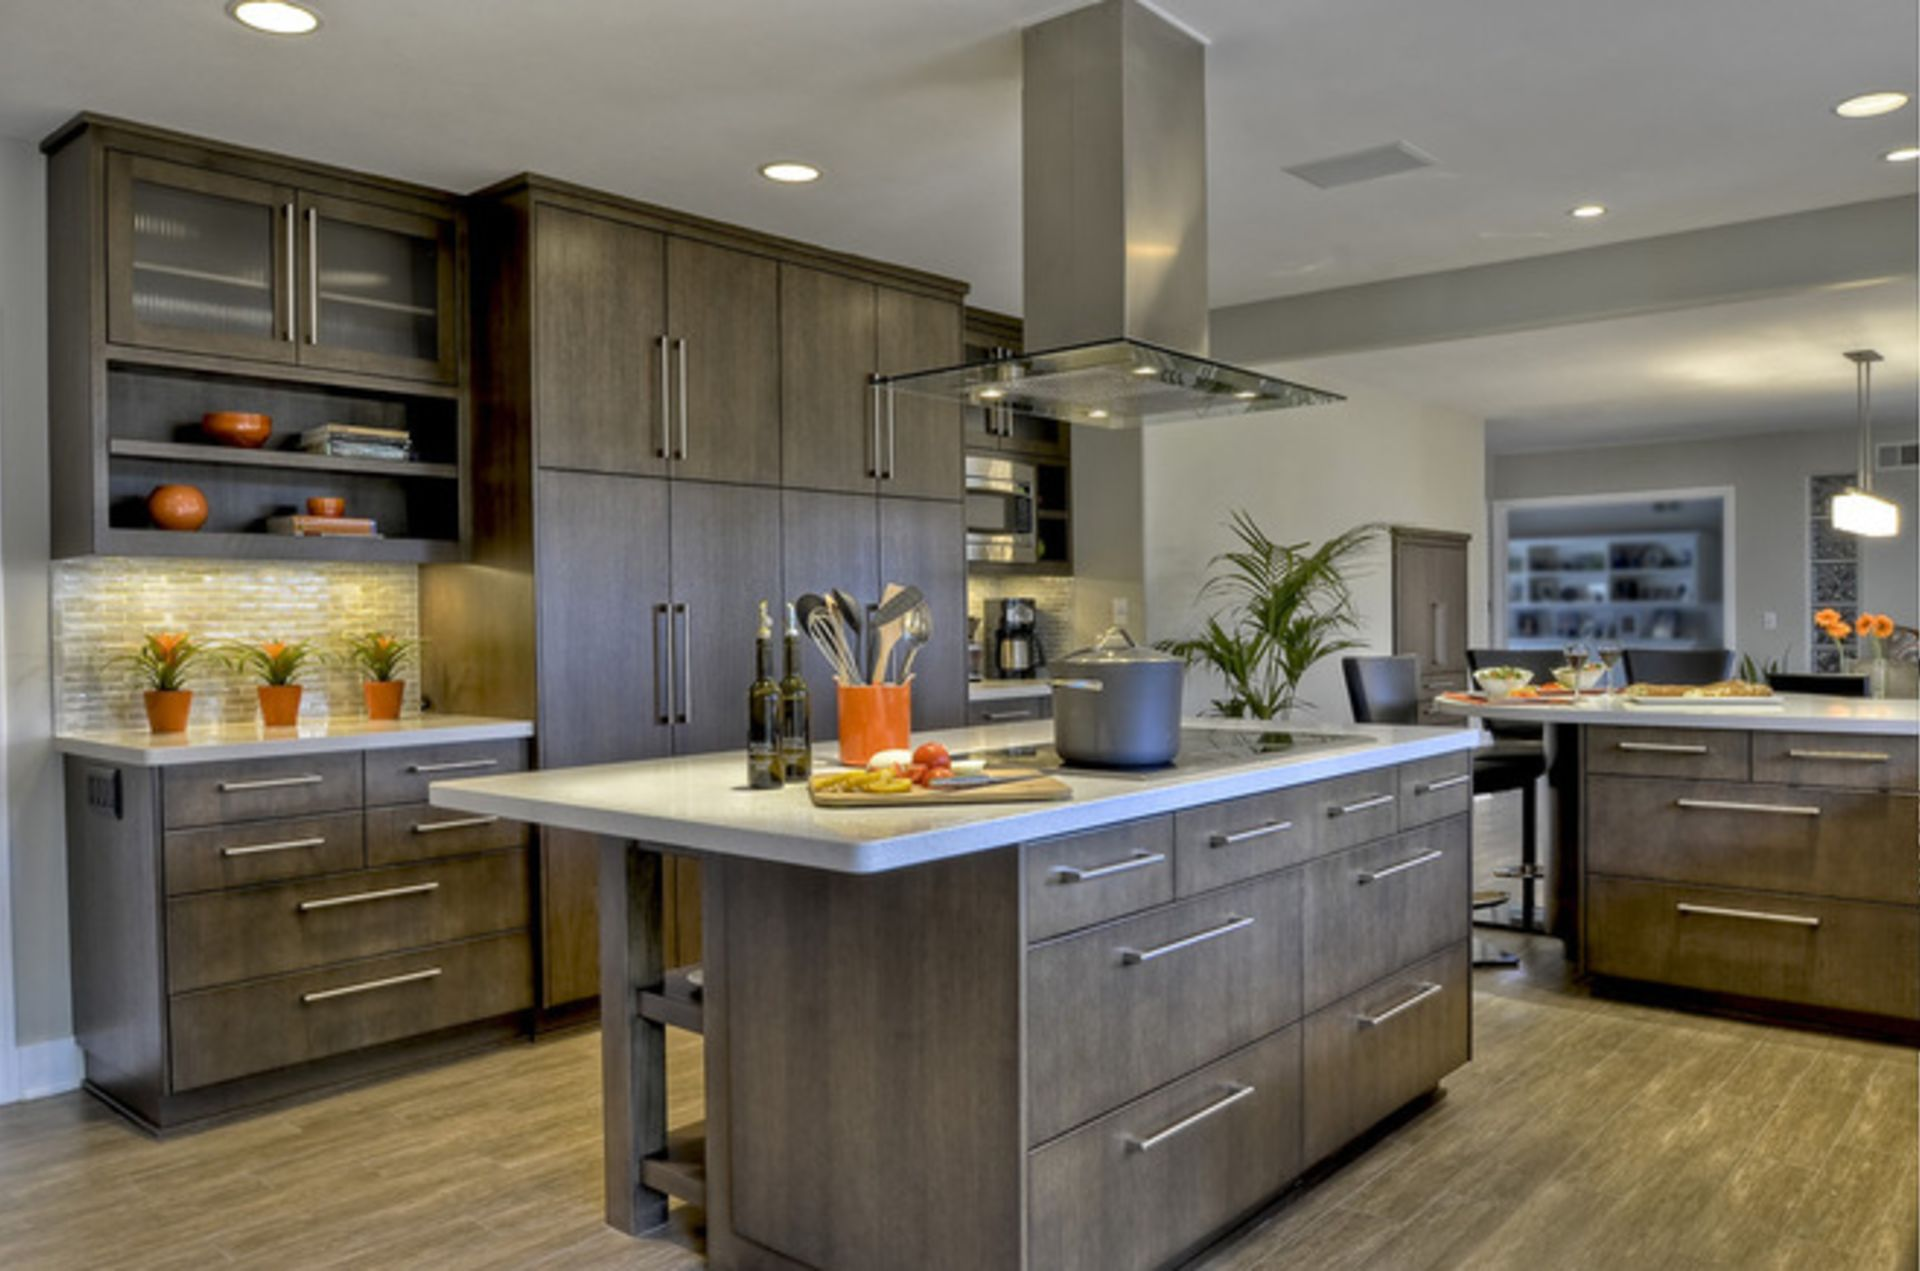 KITCHEN REMODEL FOOD FOR THOUGHT